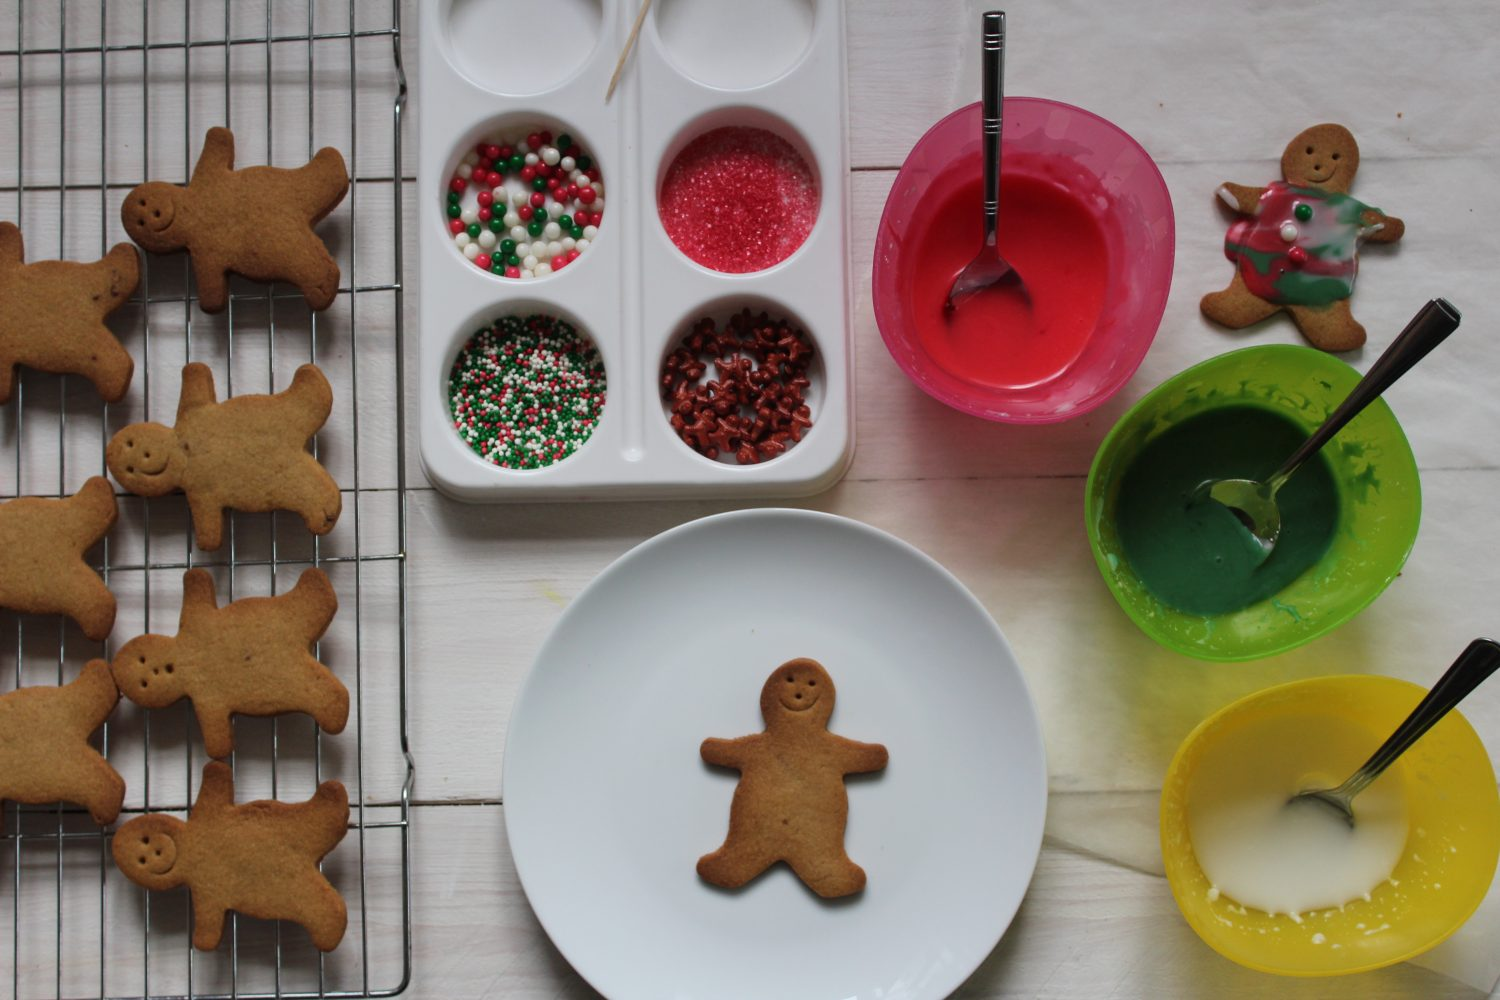 Christmas Jumper Gingerbread Men recipe